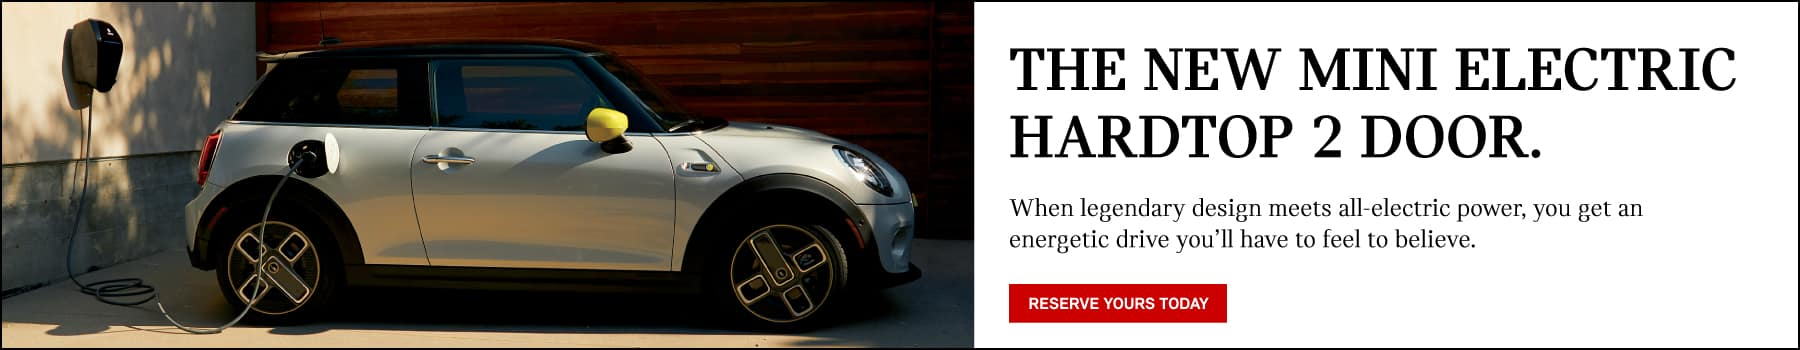 reserve your mini electric hardtop 2 door.